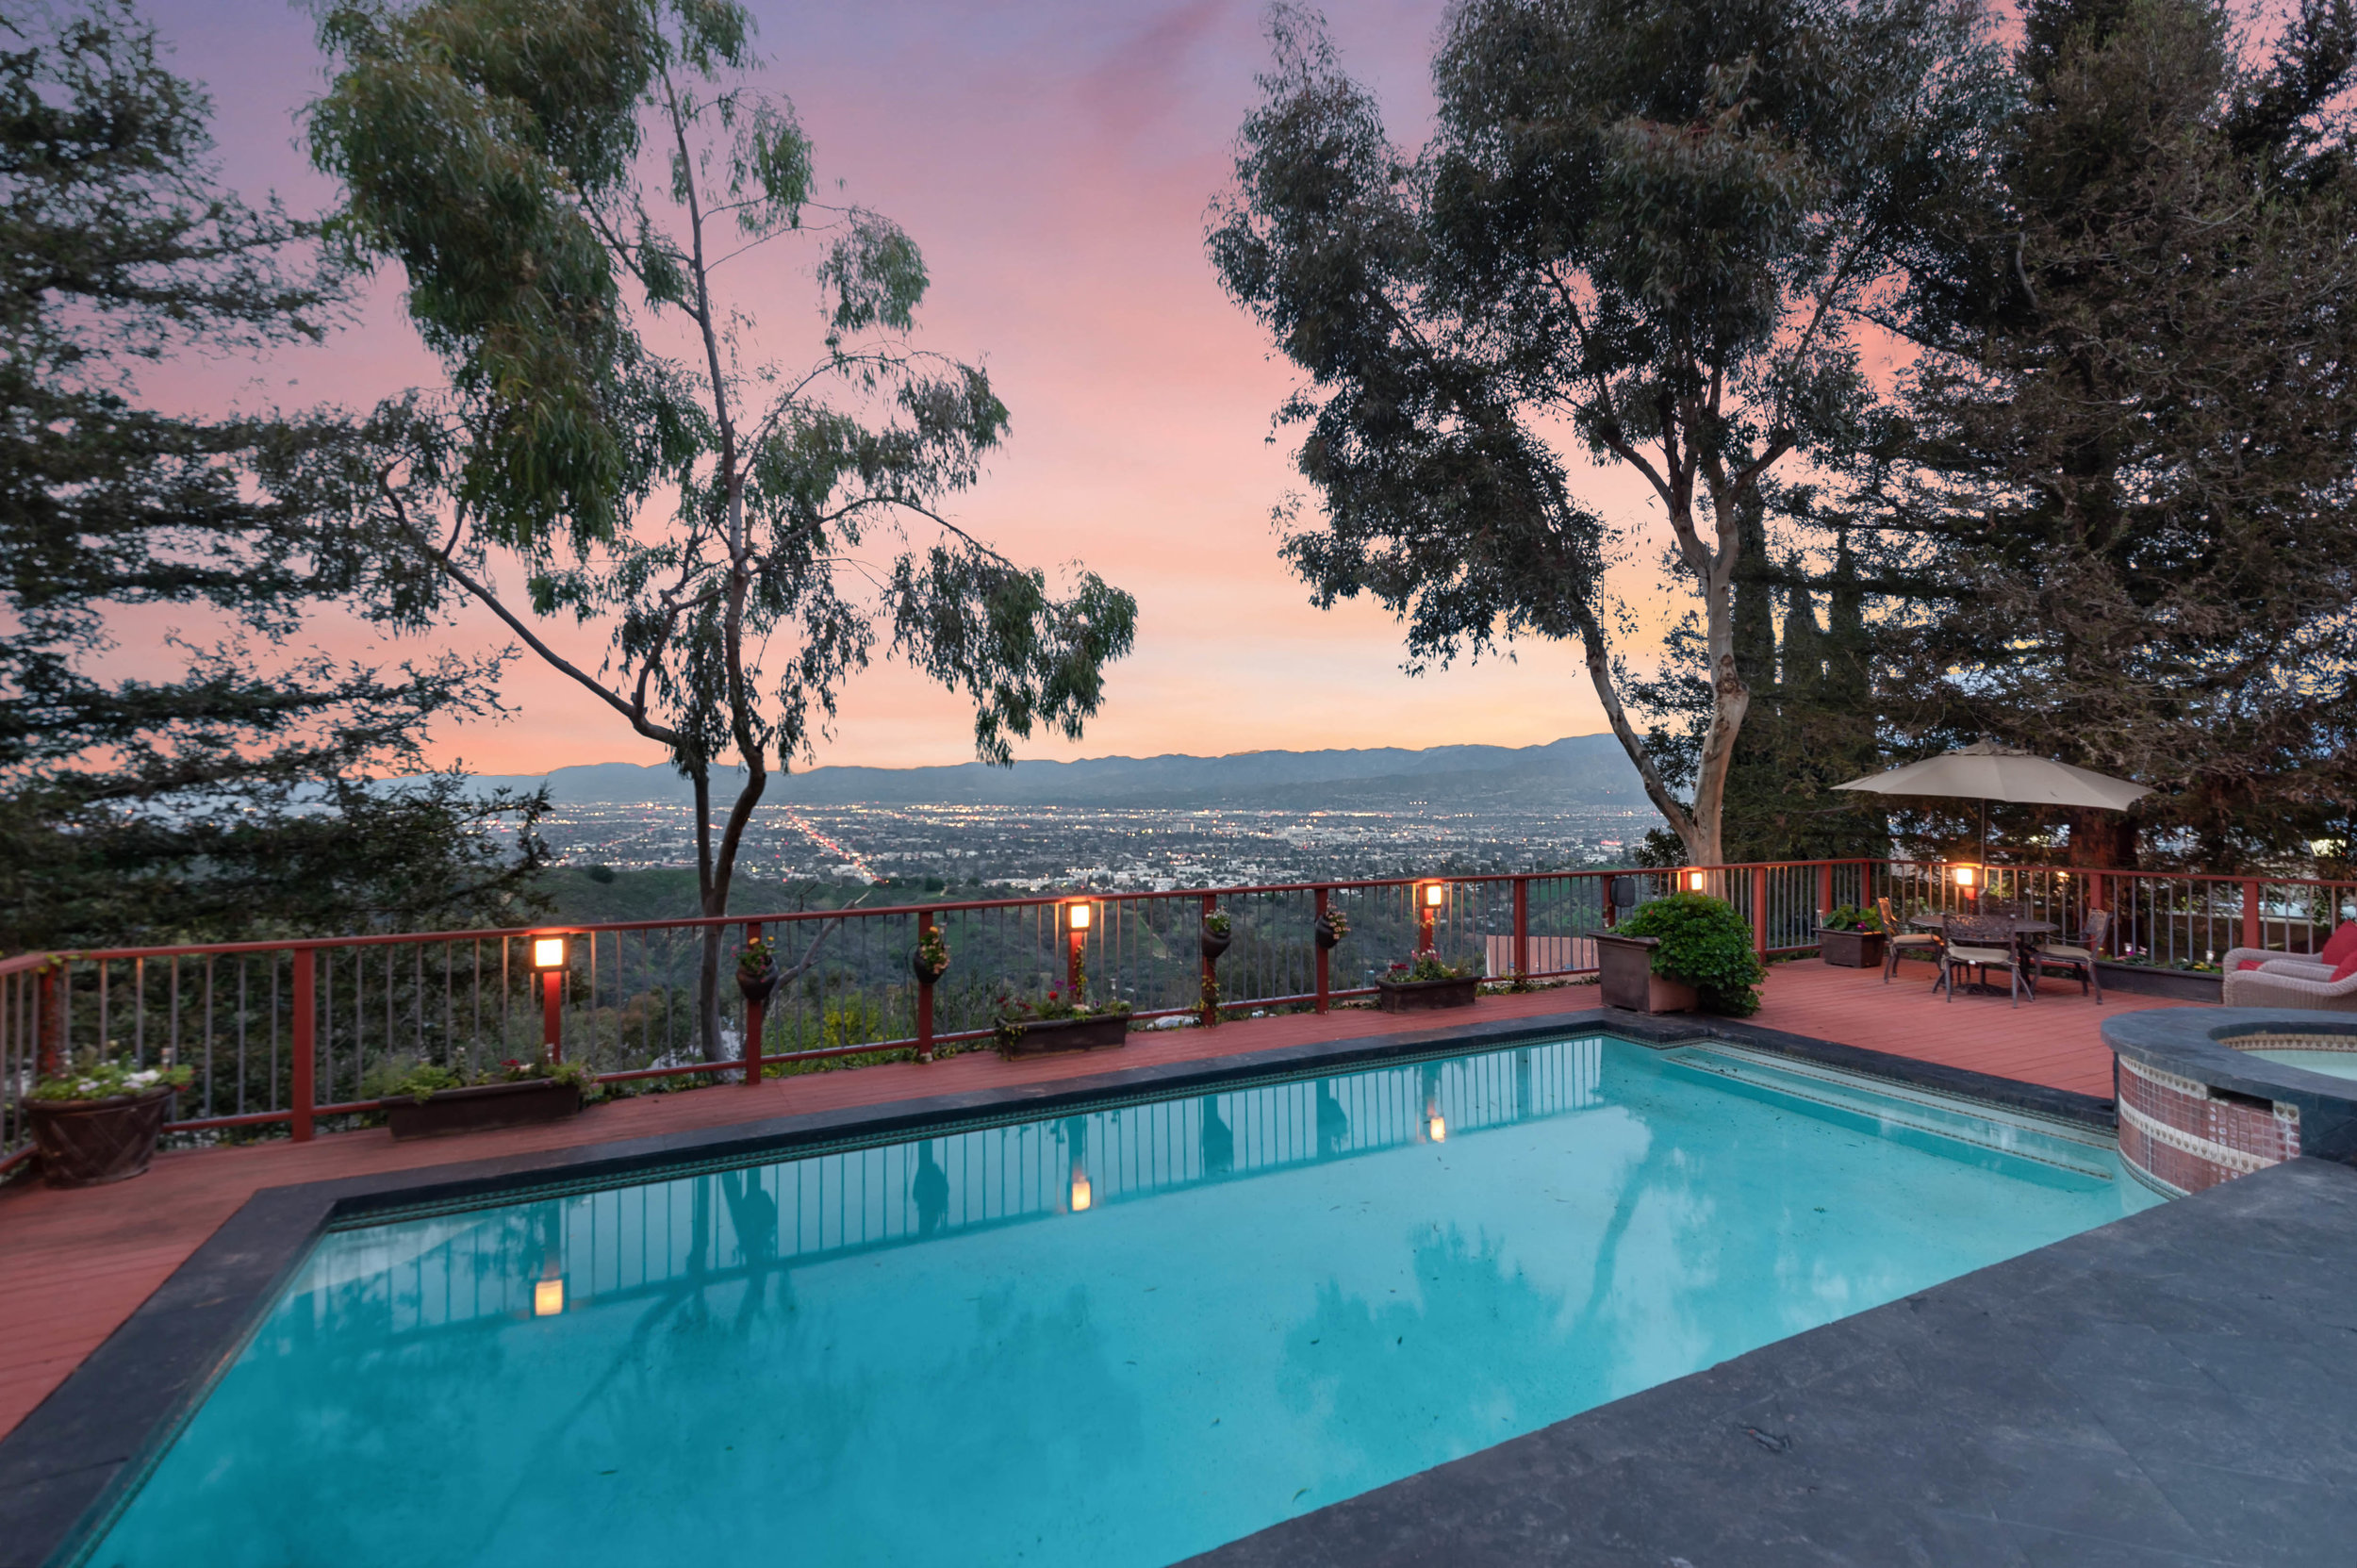 001.1 Pool 12027 Talus Place Beverly Hills 90210 For Sale Lease The Malibu Life Team Luxury Real Estate.jpg